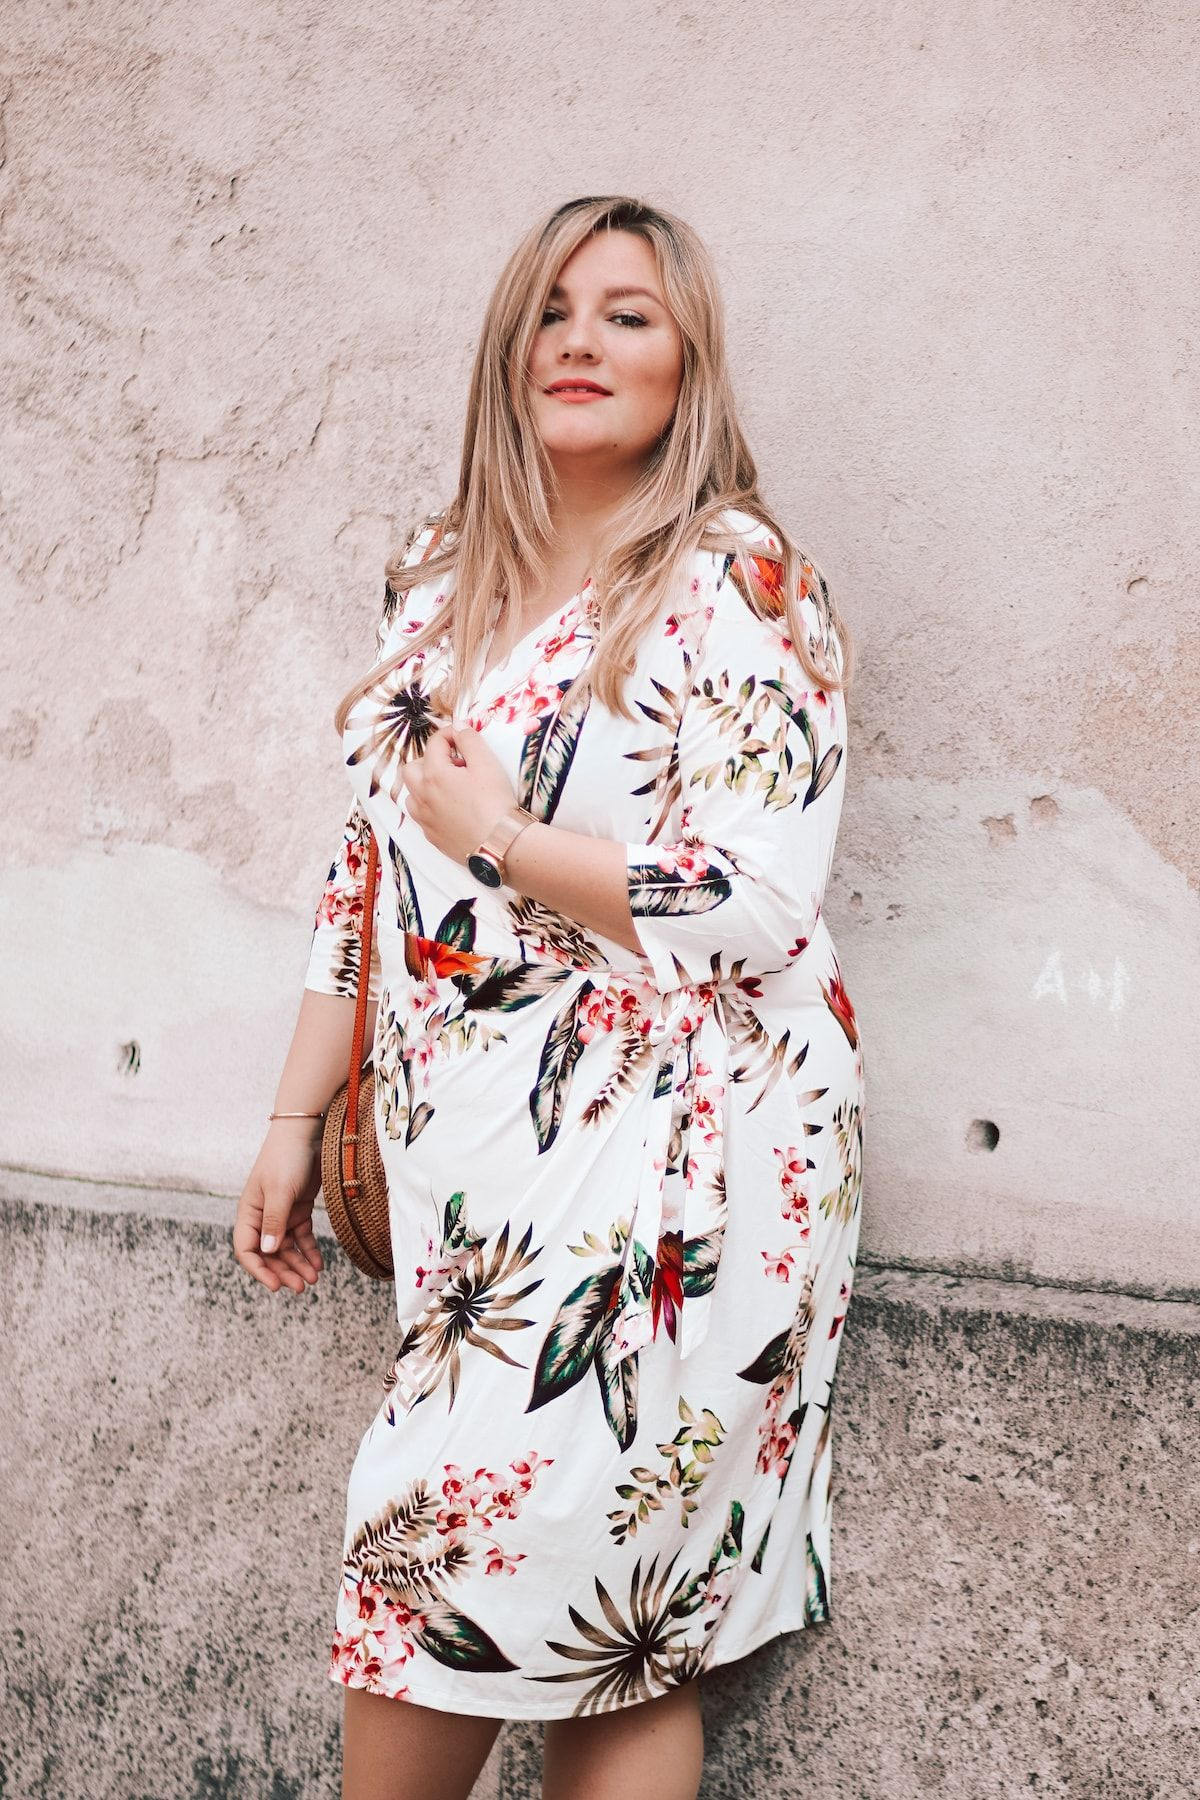 84ebf20cb14 ... PLUS SIZE von Schifferklavier. CURVE IDEAS Tropical Print - Wrapped  Dress by Belloya (WERBUNG)